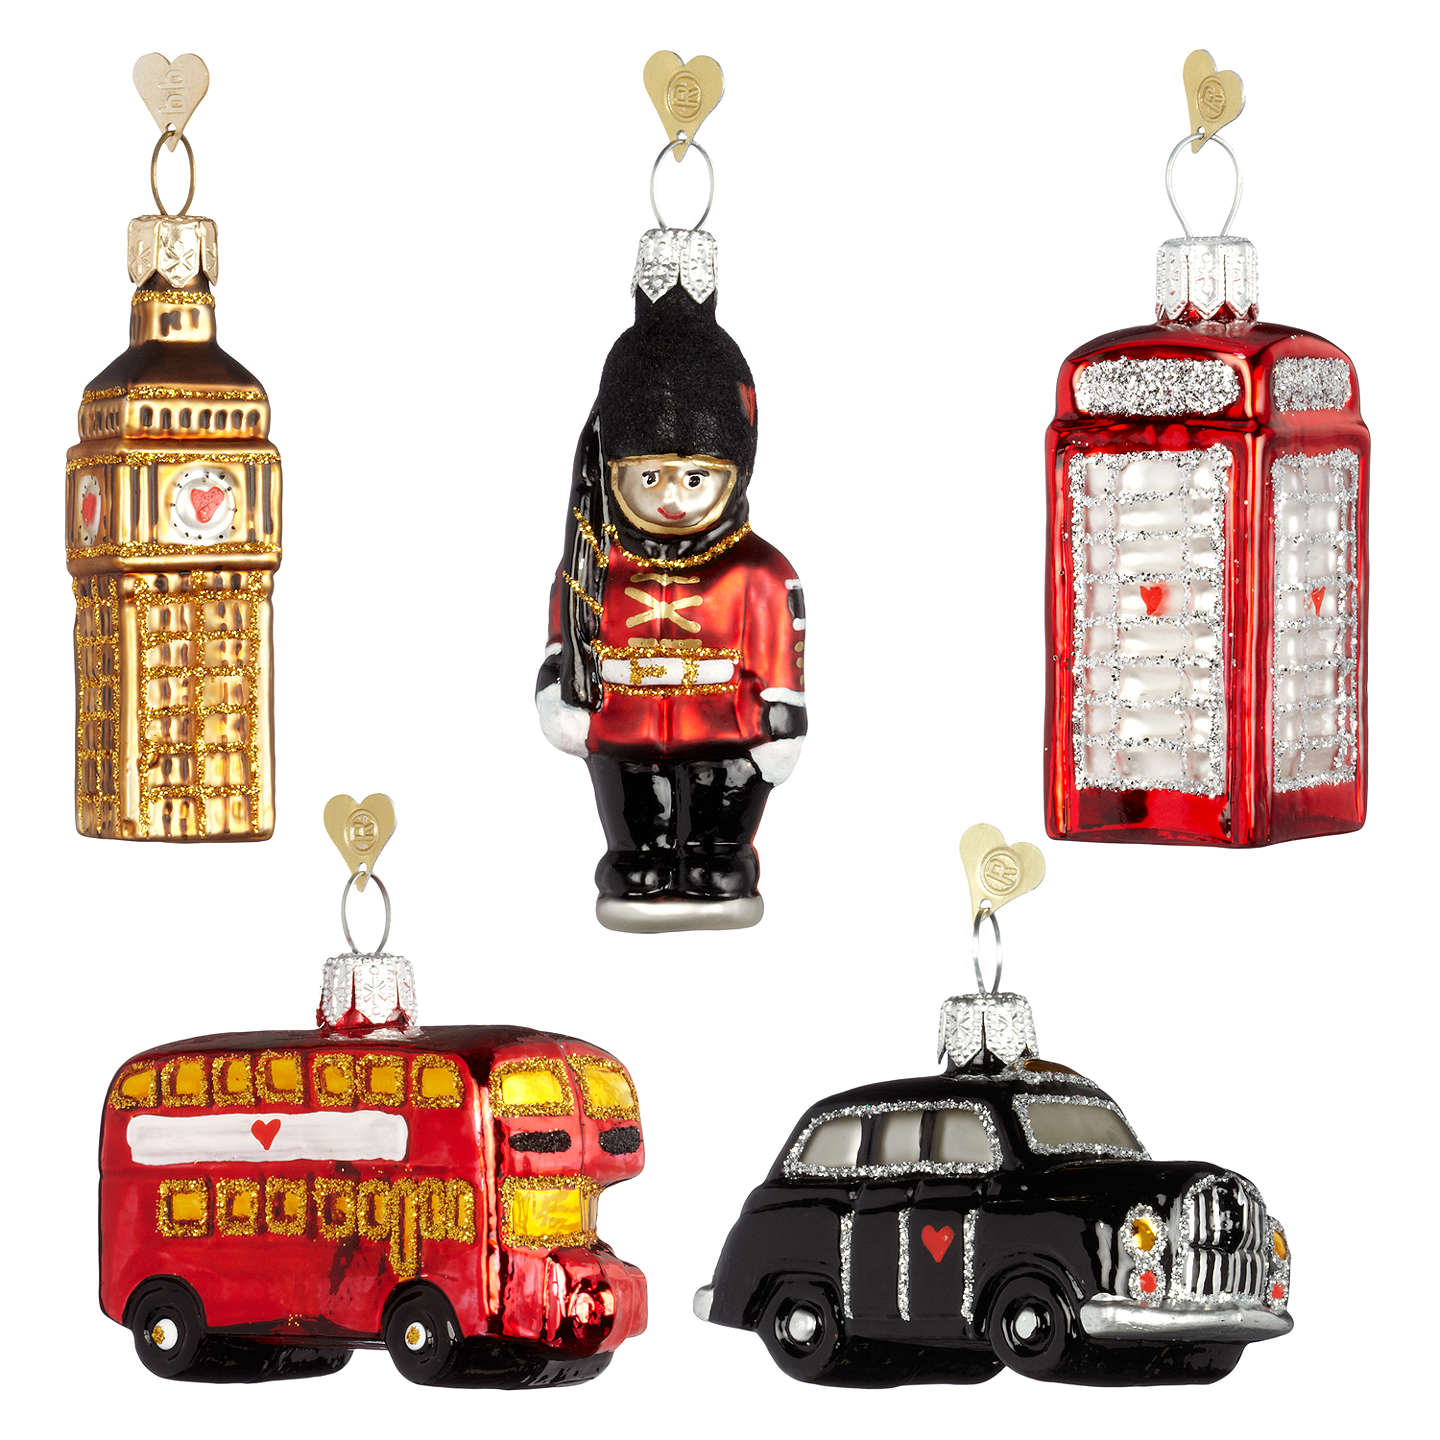 Bombki Tourism Little London Glass Hanging Decorations